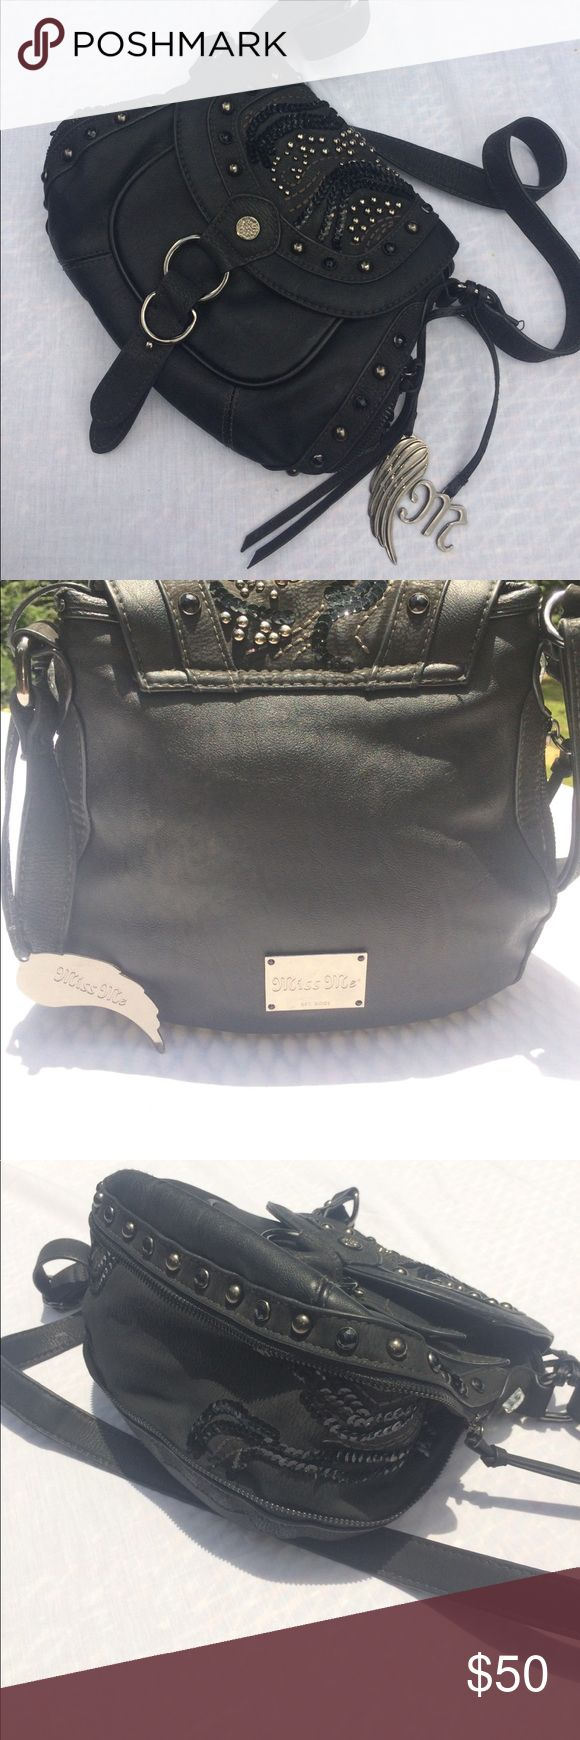 Embellished Black Miss Me Purse Soft black leather purse embellished with silver and black studs, rhinestones, and sequins throughout. The zipper running along the sides and bottom of the purse opens to reveal additional space and a beautiful sequin design. Leather straps are adjustable for custom fit. Inside of the purse has an open pocket and zipper pocket. Gently used. Miss Me Bags Crossbody Bags